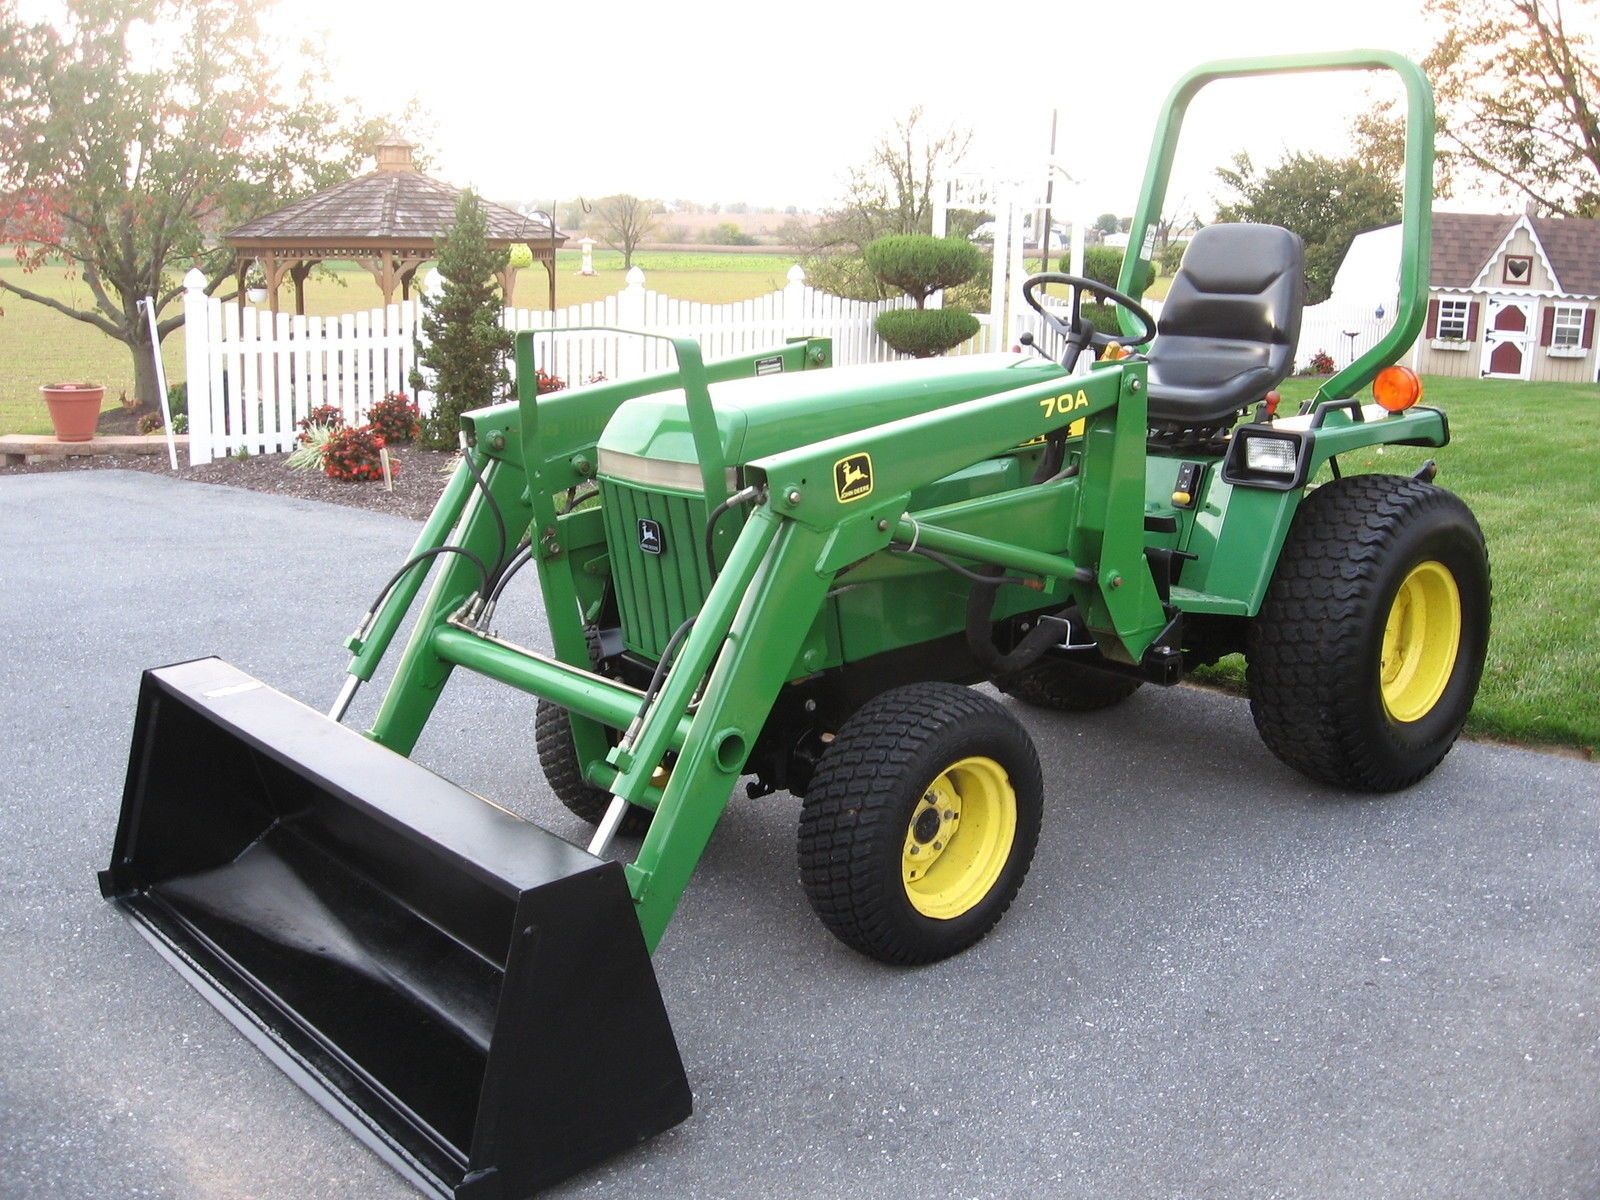 hight resolution of john deere 855 diesel 412 hrs 4x4 hydro loader compact tractor nice ebay